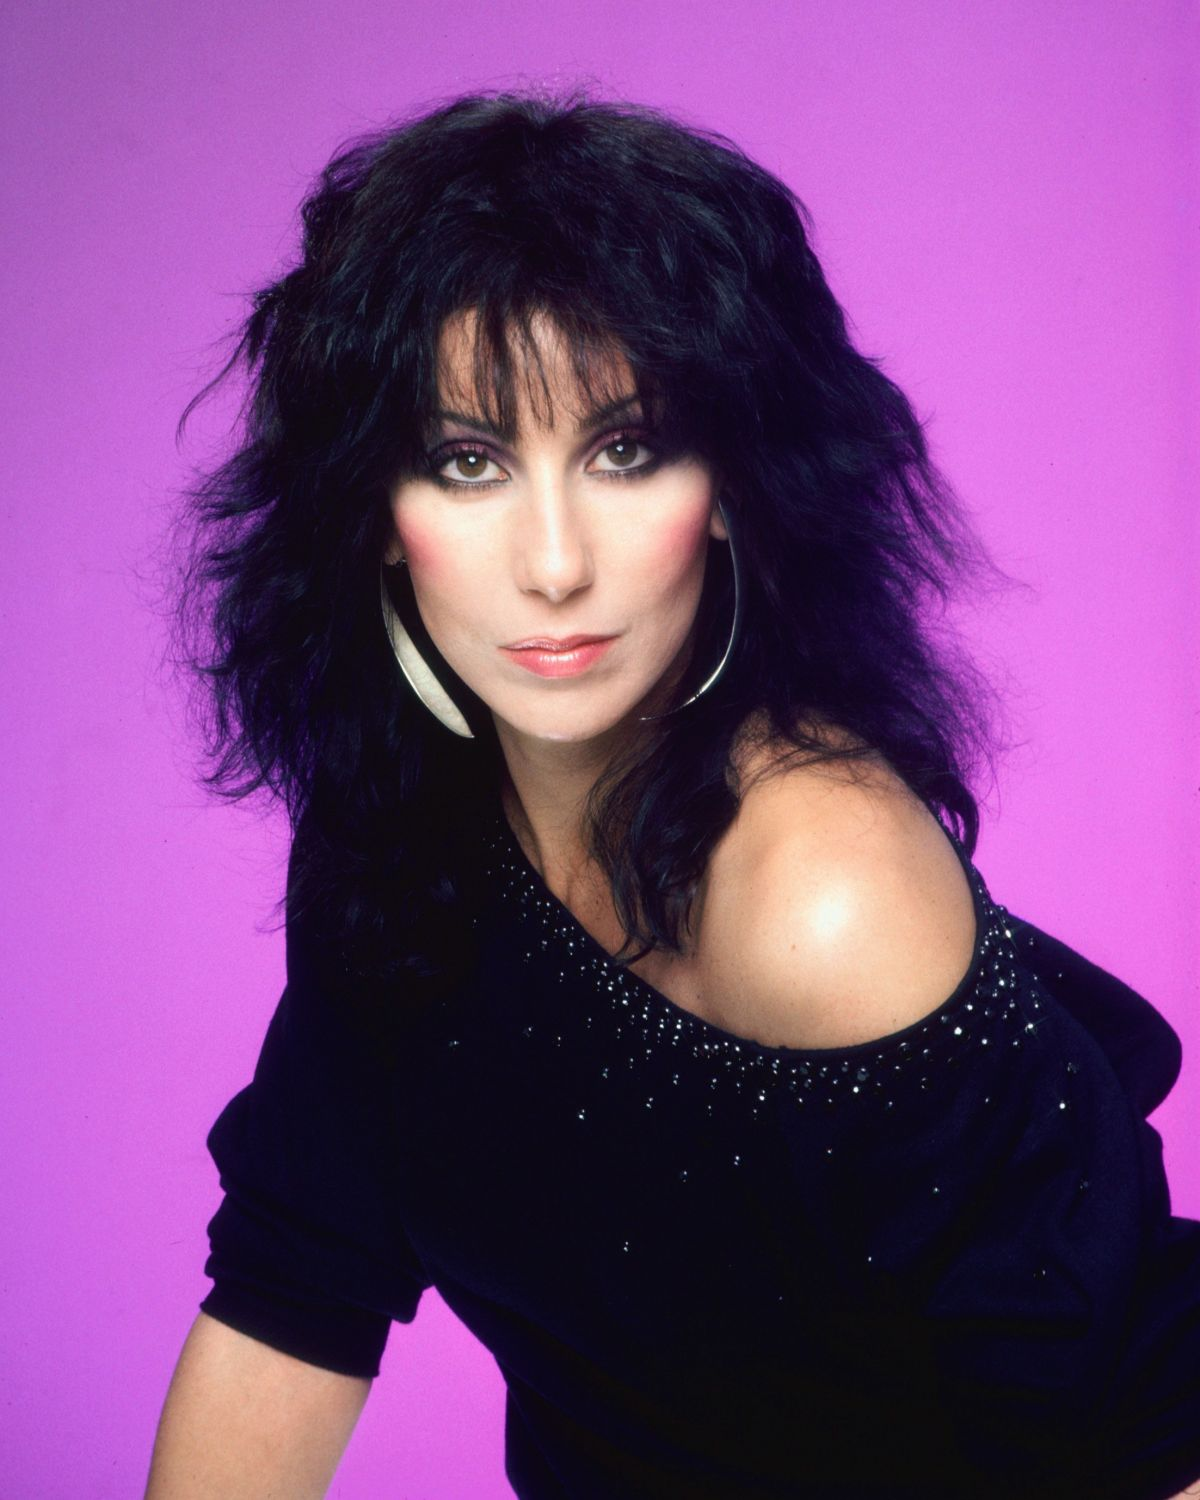 Cher At July 1979 Harry Langdon Photoshoot